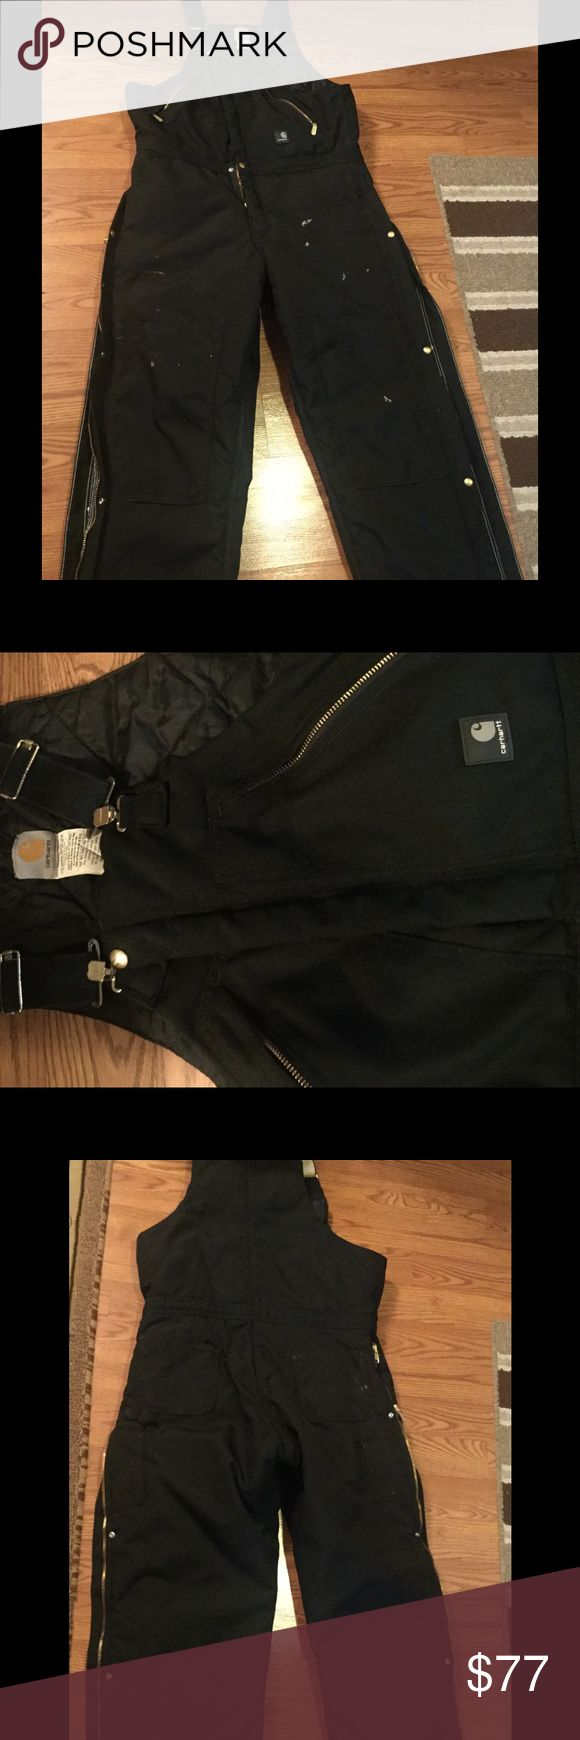 Carhartt Extreme Men Bib overalls Carhartt Extreme Zip to waist Biberall / Arctic Quilt lined insulated. Men's size 36/32,Cordura, Nylon,Poly/Nylon lining,Water Repellent color Black retail Price $134.99 without tax. Was only worn twice by my son he's a Commercial Plumber it has several spots on it from outside plumbing as shown in pictures,there's no tears, Other than the spots it's still like brand new and fluffy like first bought. Carhartt Extreme Other